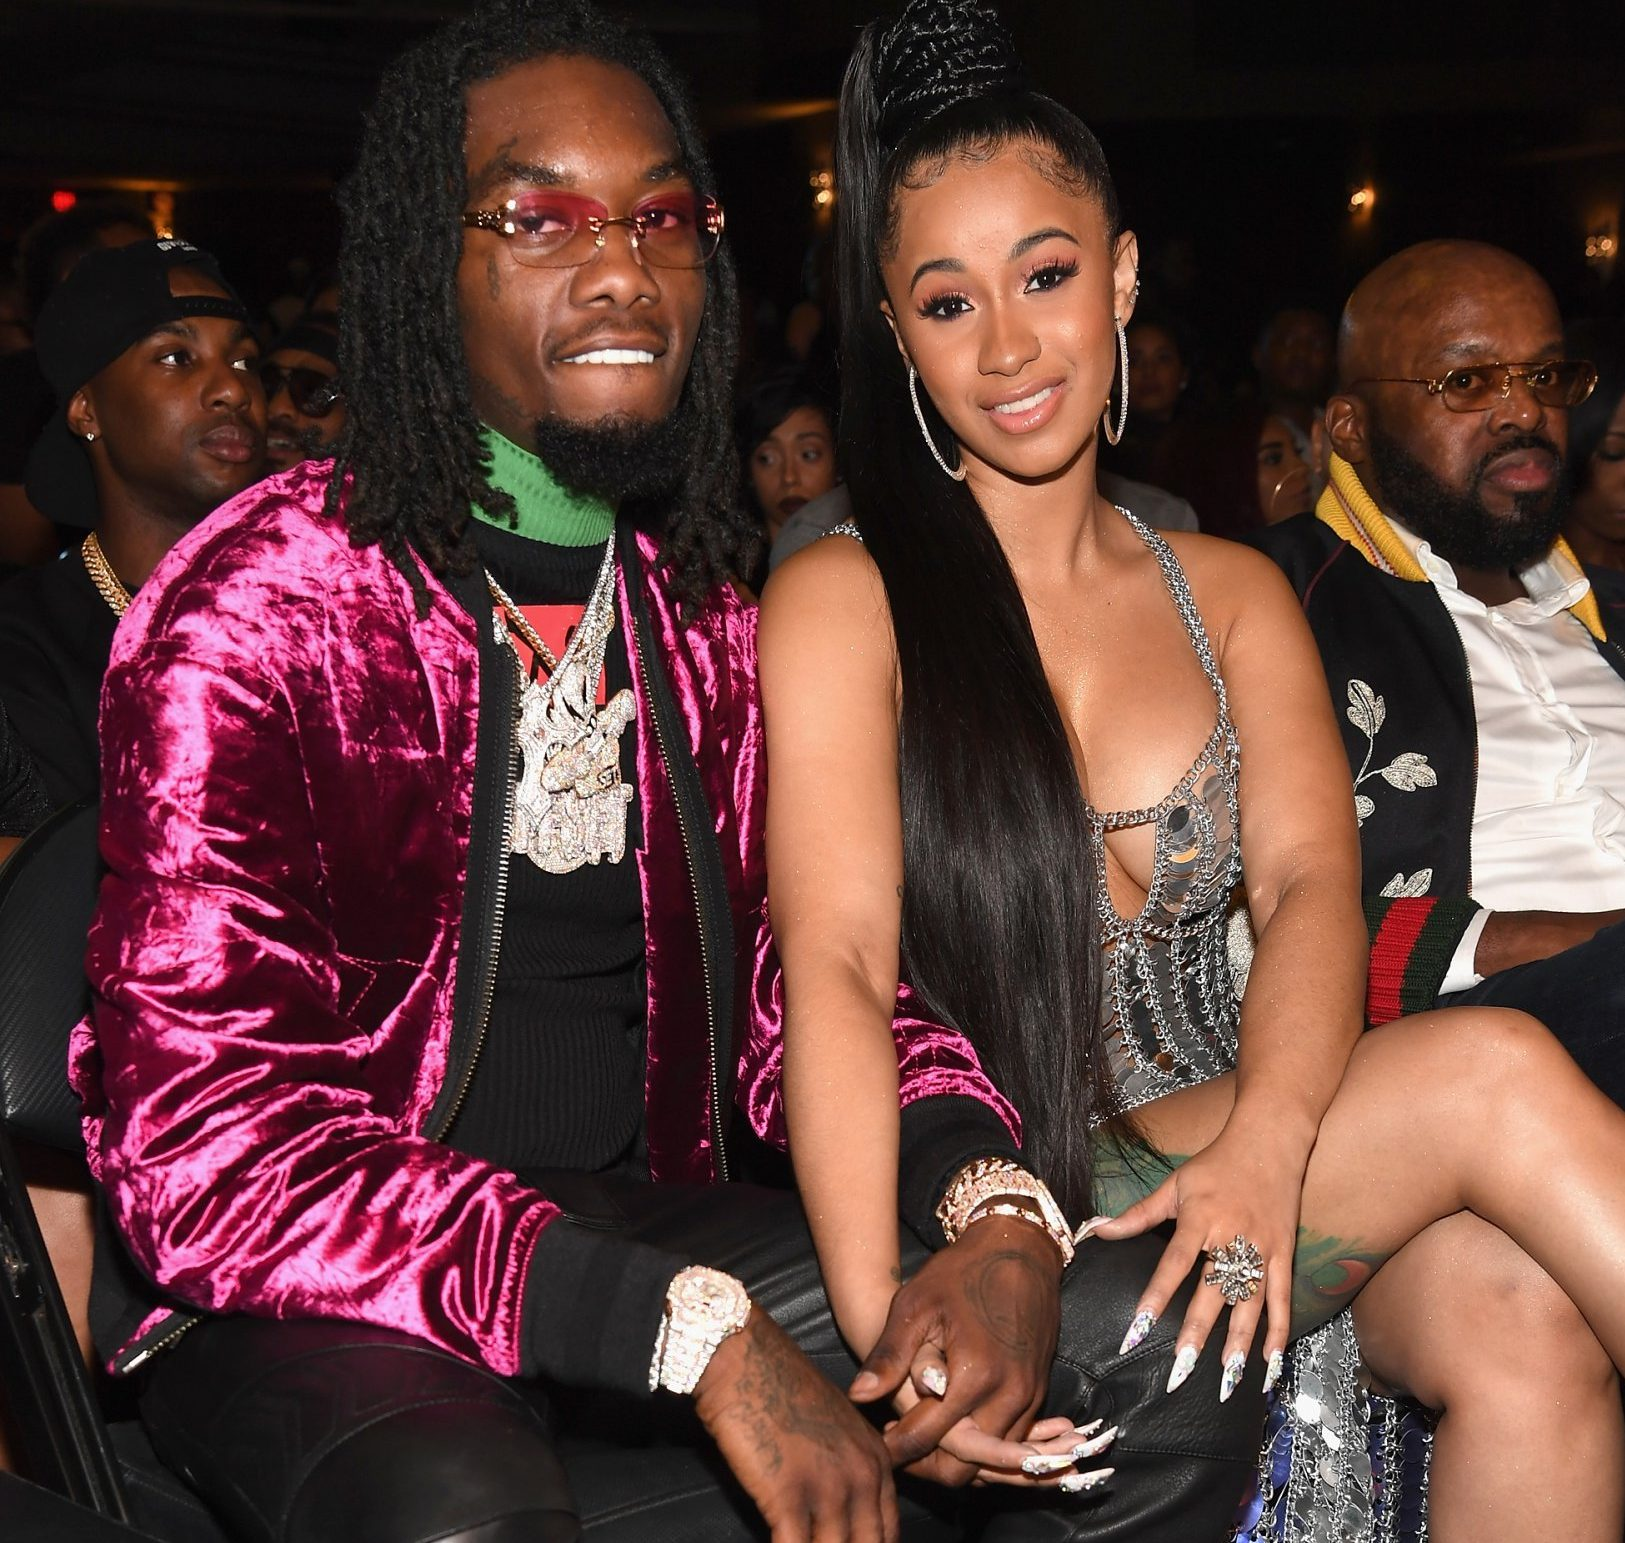 MIAMI BEACH, FL - OCTOBER 06: Rappers Offset of Migos and Cardi B attend the BET Hip Hop Awards 2017 at The Fillmore Miami Beach at the Jackie Gleason Theater on October 6, 2017 in Miami Beach, Florida. (Photo by Paras Griffin/Getty Images for BET)